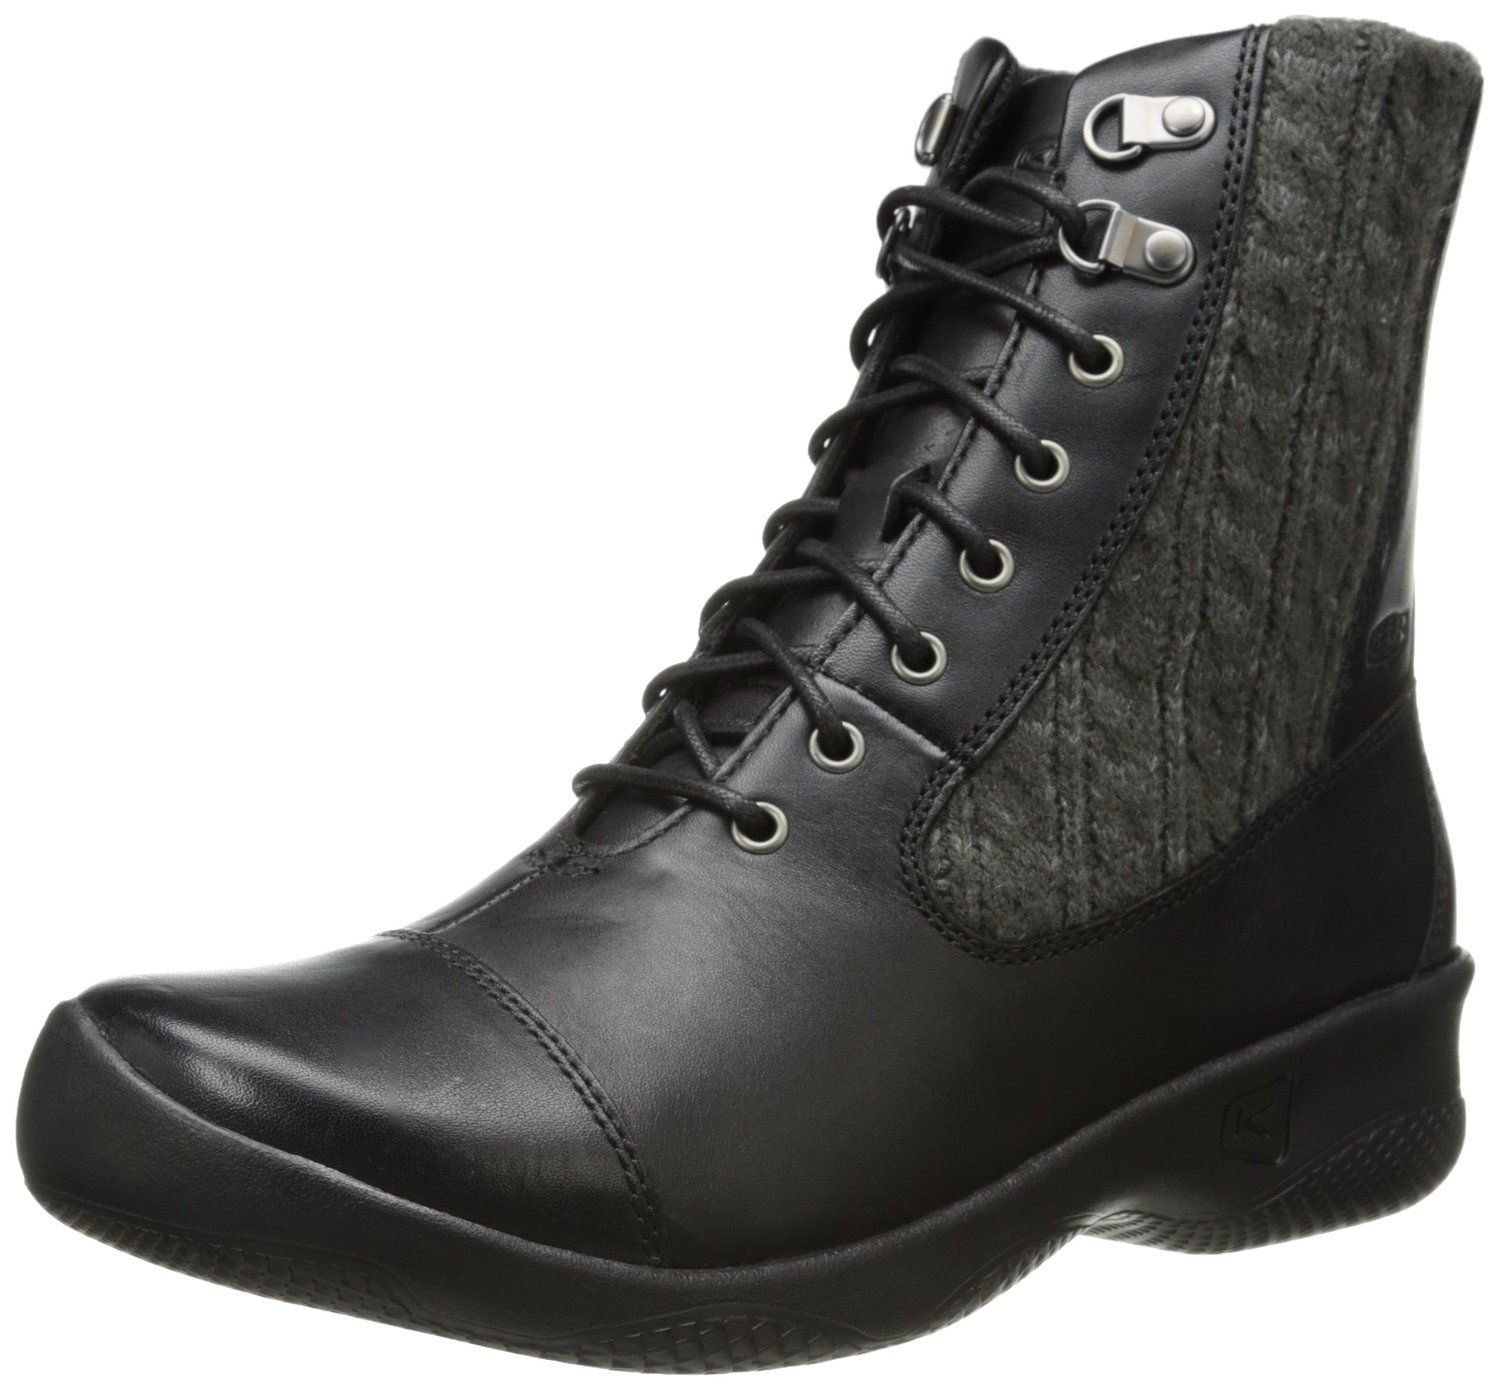 KEEN Women s Bern Baby Lace Winter Boot = New and awesome boots